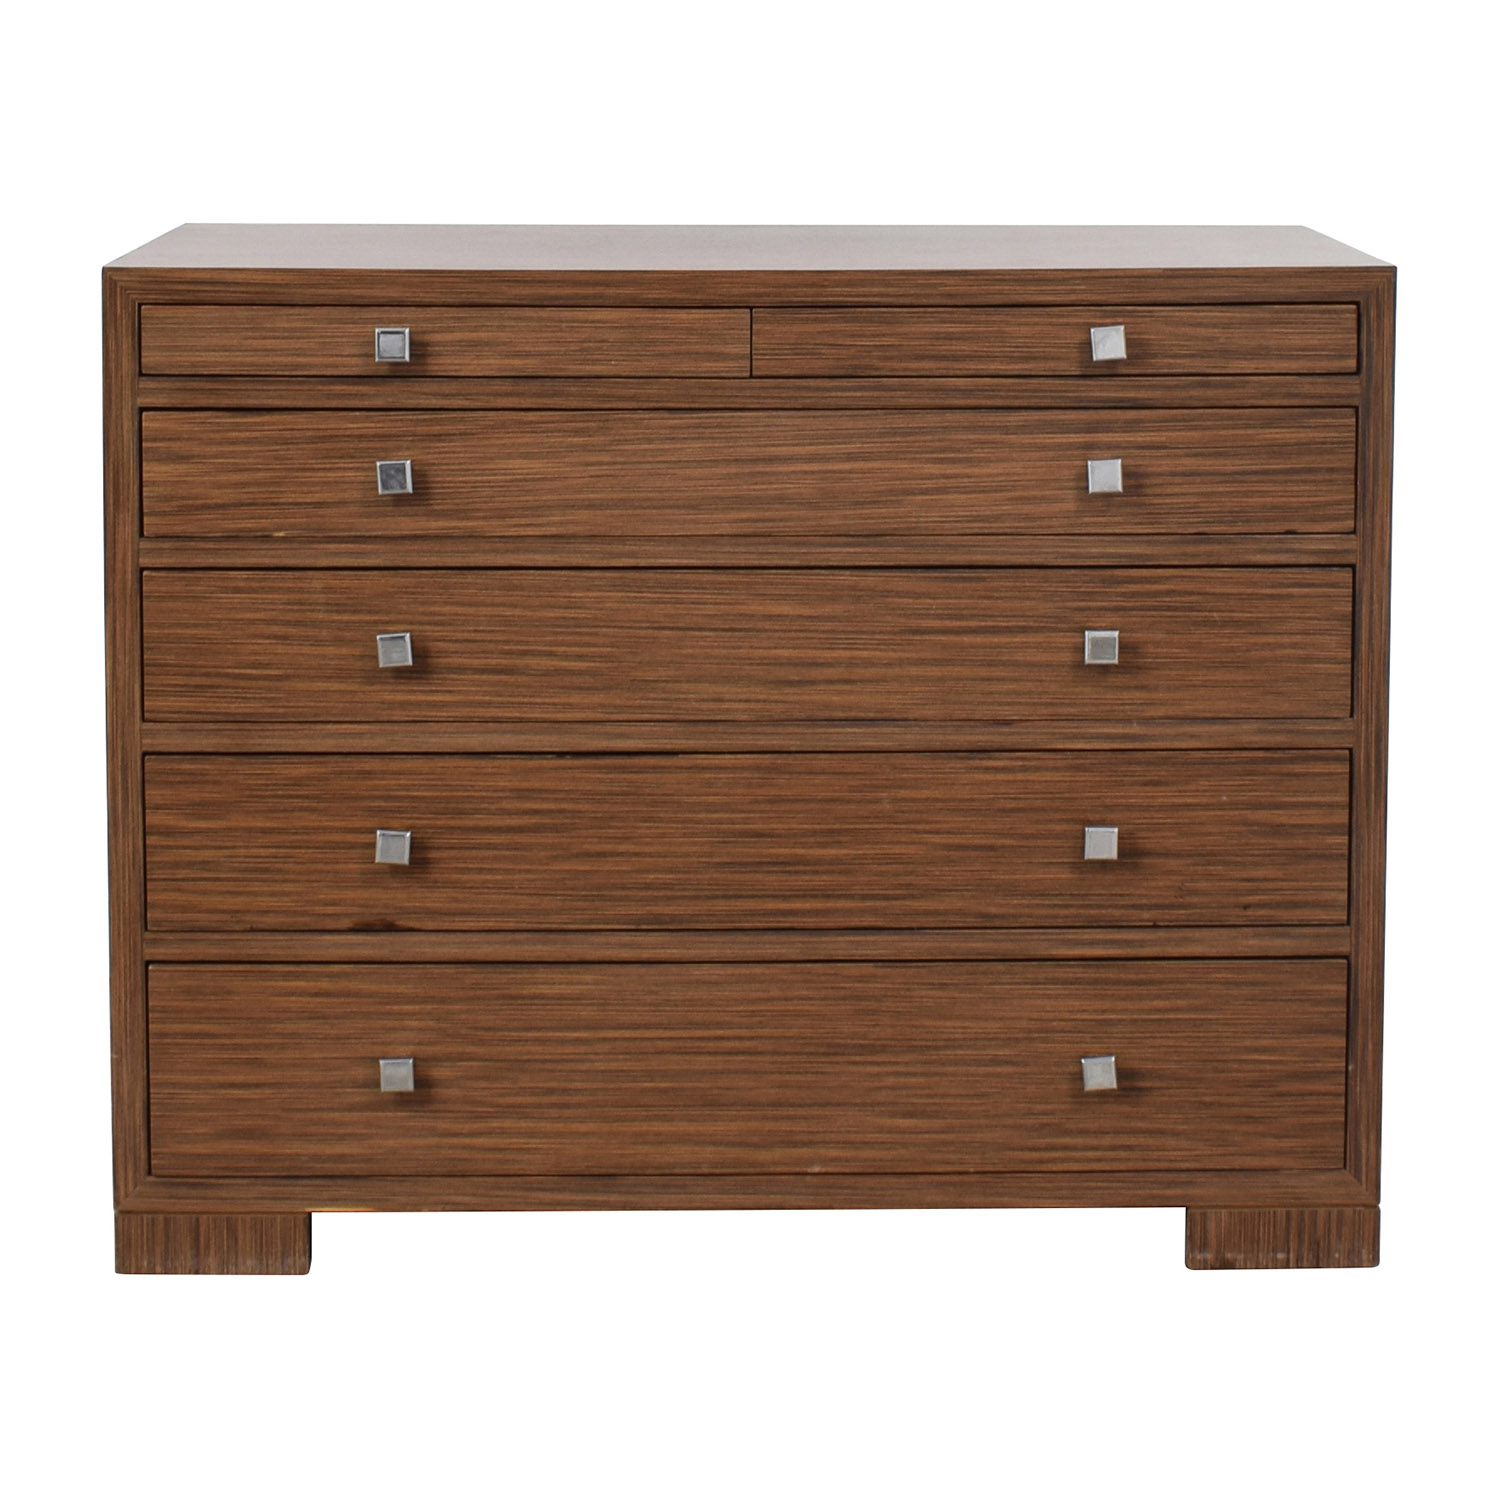 Bungalow 5 Frances Brown 6-Drawer Dresser Bungalow 5